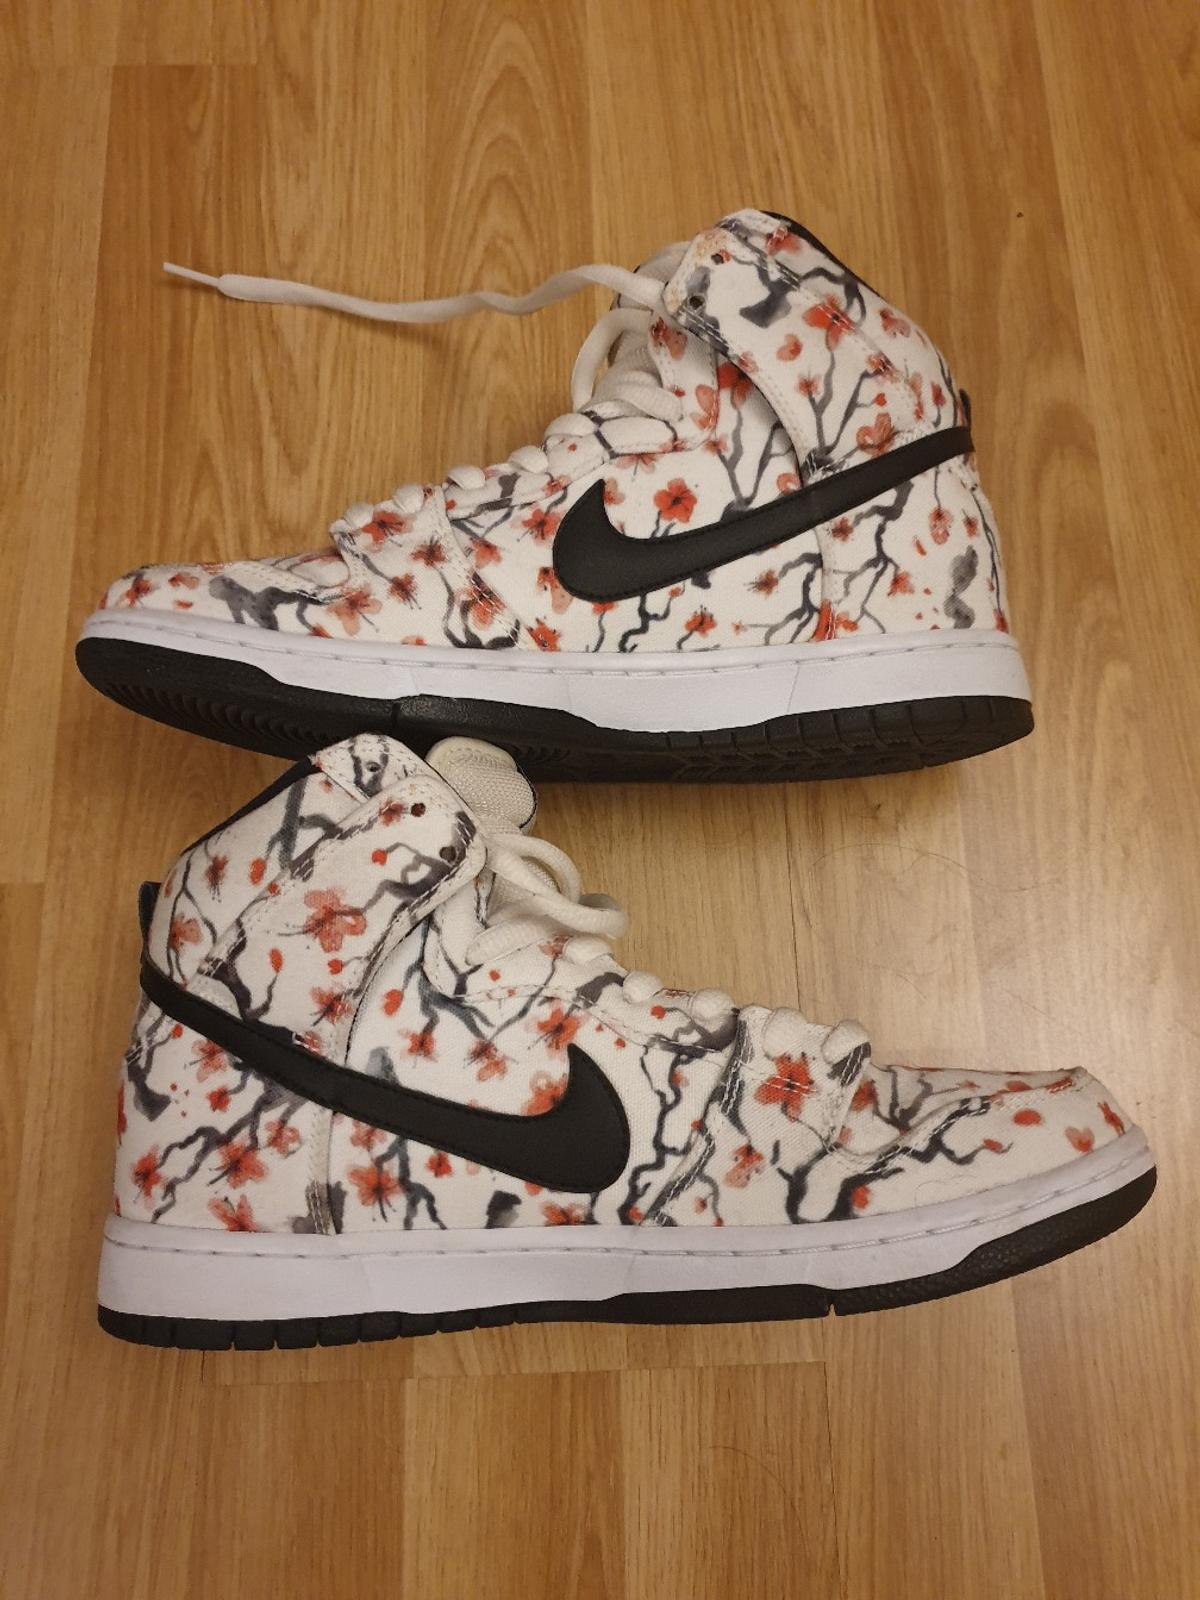 first rate recognized brands discount sale Nike SB Dunk High Cherry Blossom